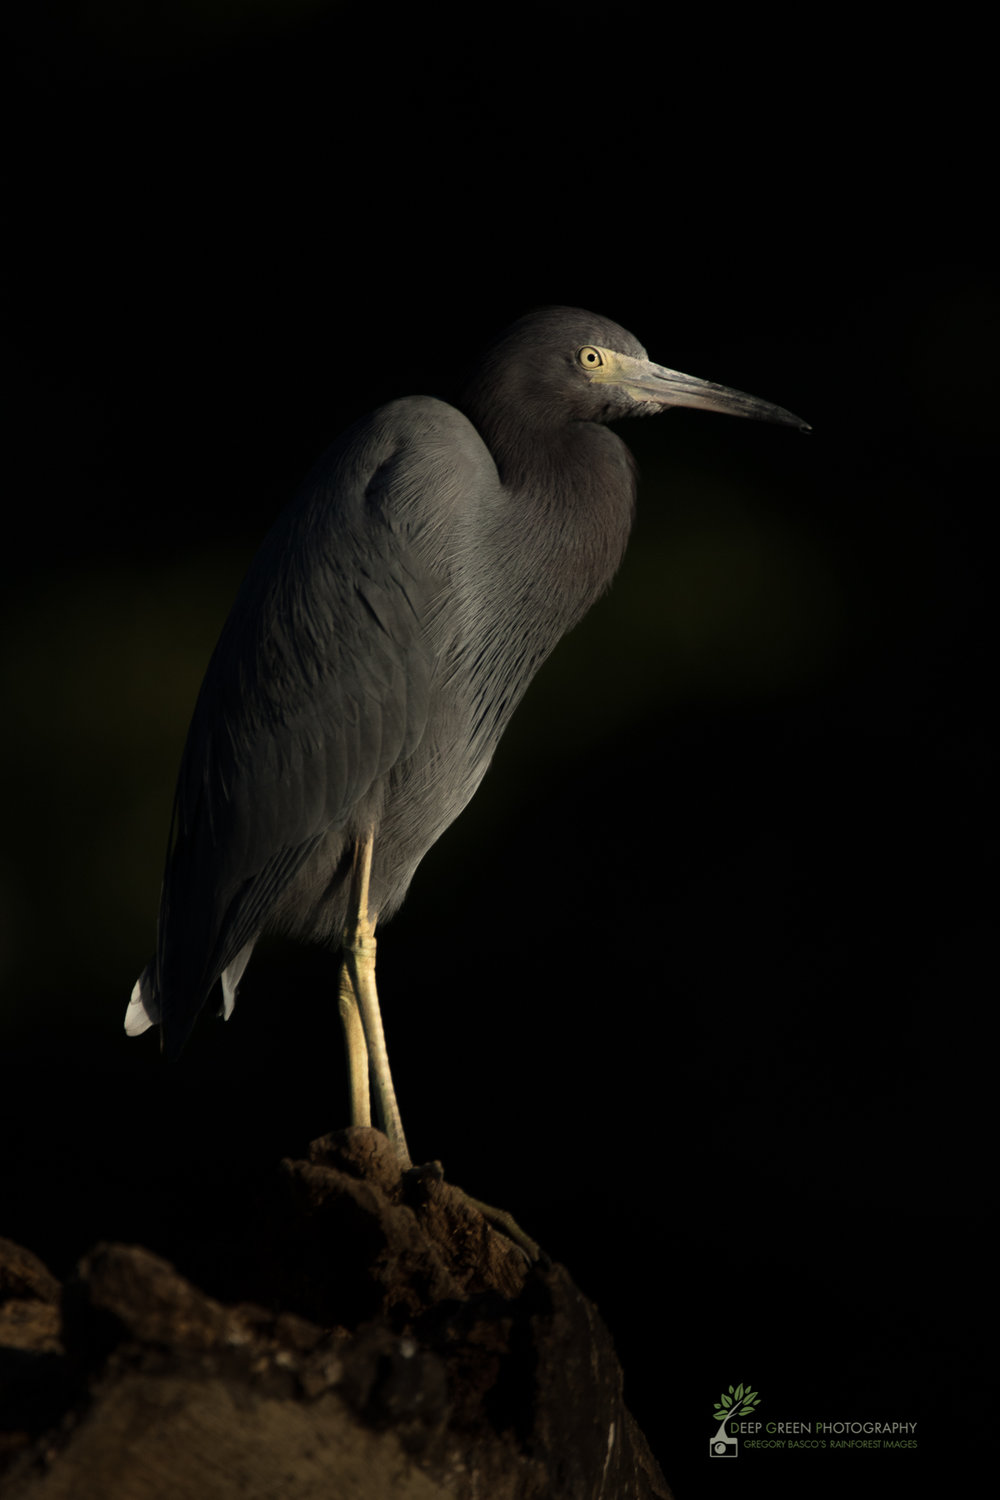 A little blue heron in early morning light, Tarcoles River, Costa Rica